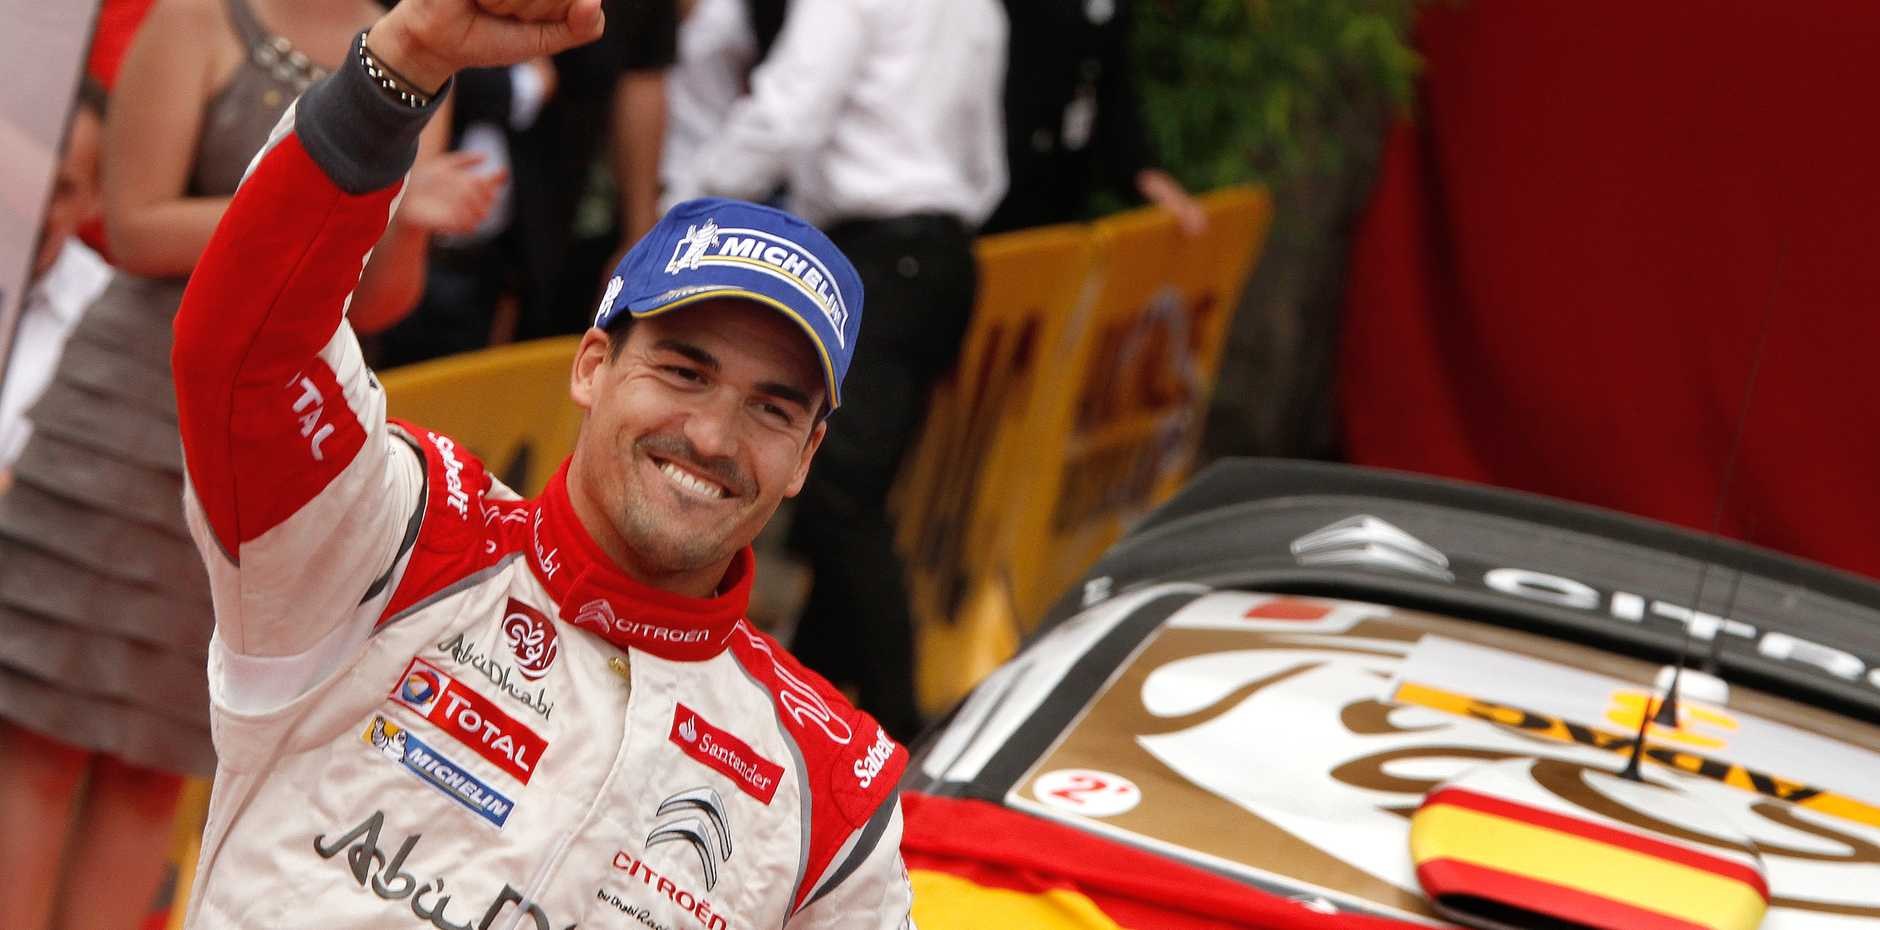 Dani Sordo is in flying form ahead of Rally Australia - Coffs Coast claiming honours in the German round at the weekend.